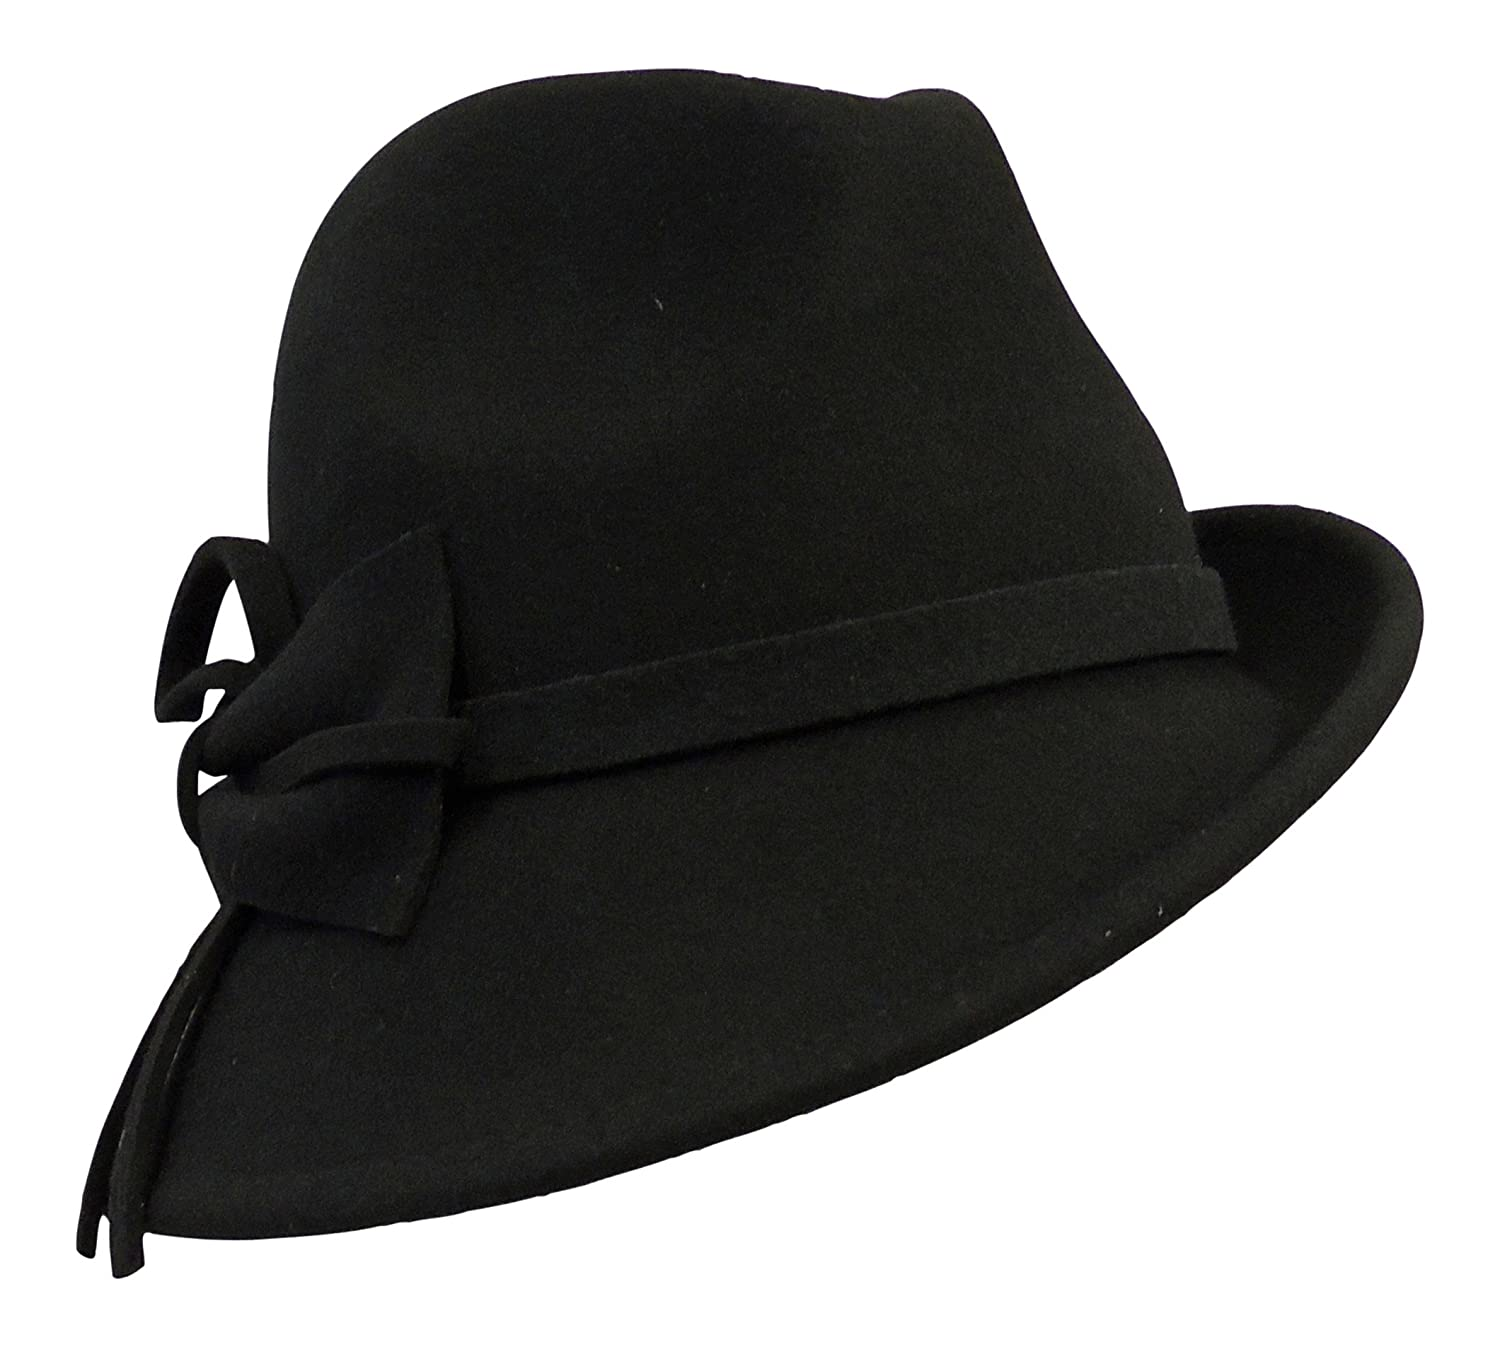 Retro Vintage 1920 s 1930 s 1940 s style Felt Fedora Cloche Gatsby Trilby  Hat  Boutique Brand  Amazon.co.uk  Clothing 0b4b8f22fb7